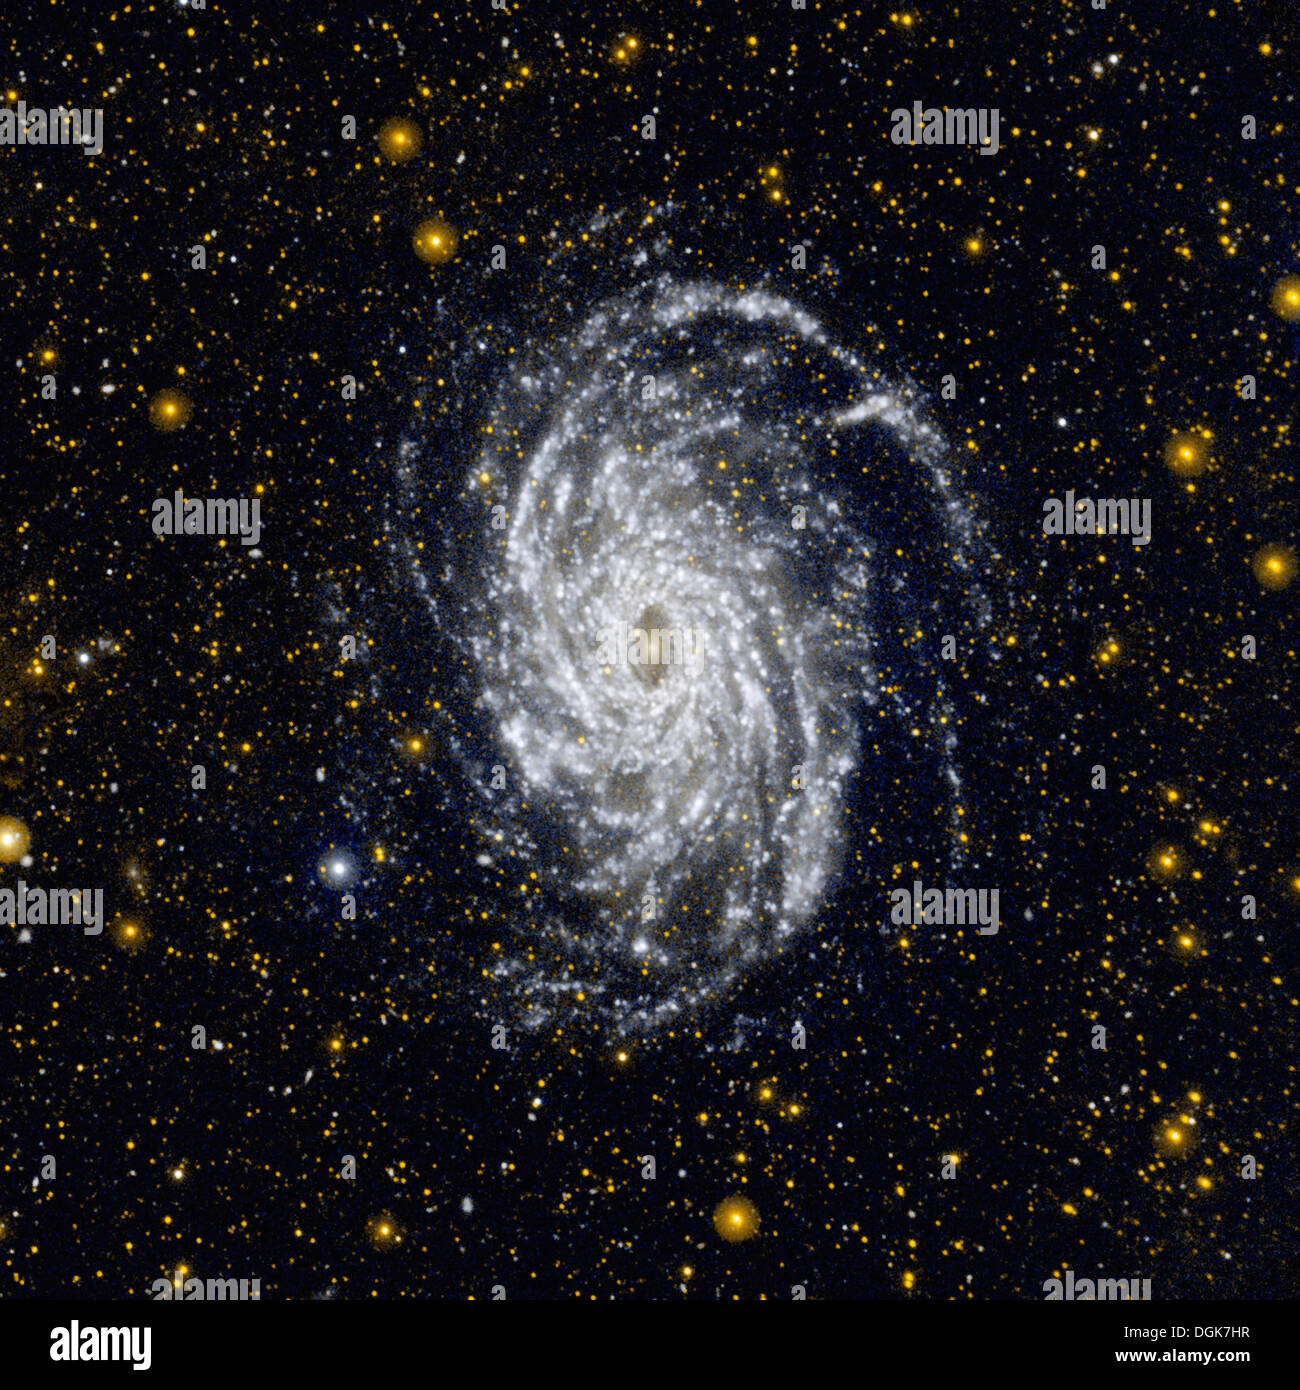 NGC 6744, a galaxy similar to our Milky Way - Stock Image